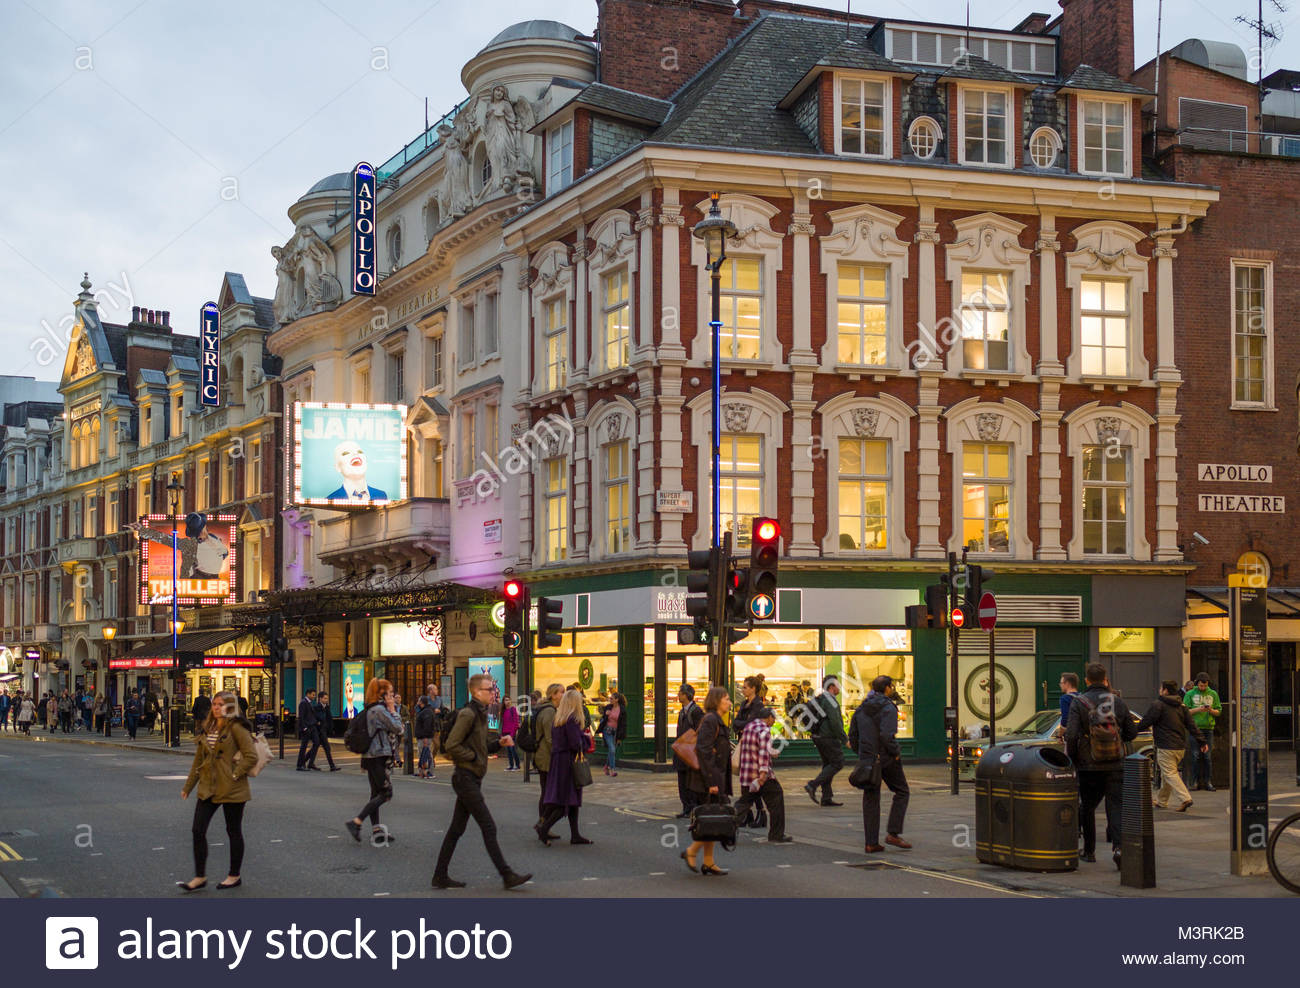 Apollo Theatre, Shaftesbury Avenue, City of Westminster, London, England, United Kingdom - Stock Image